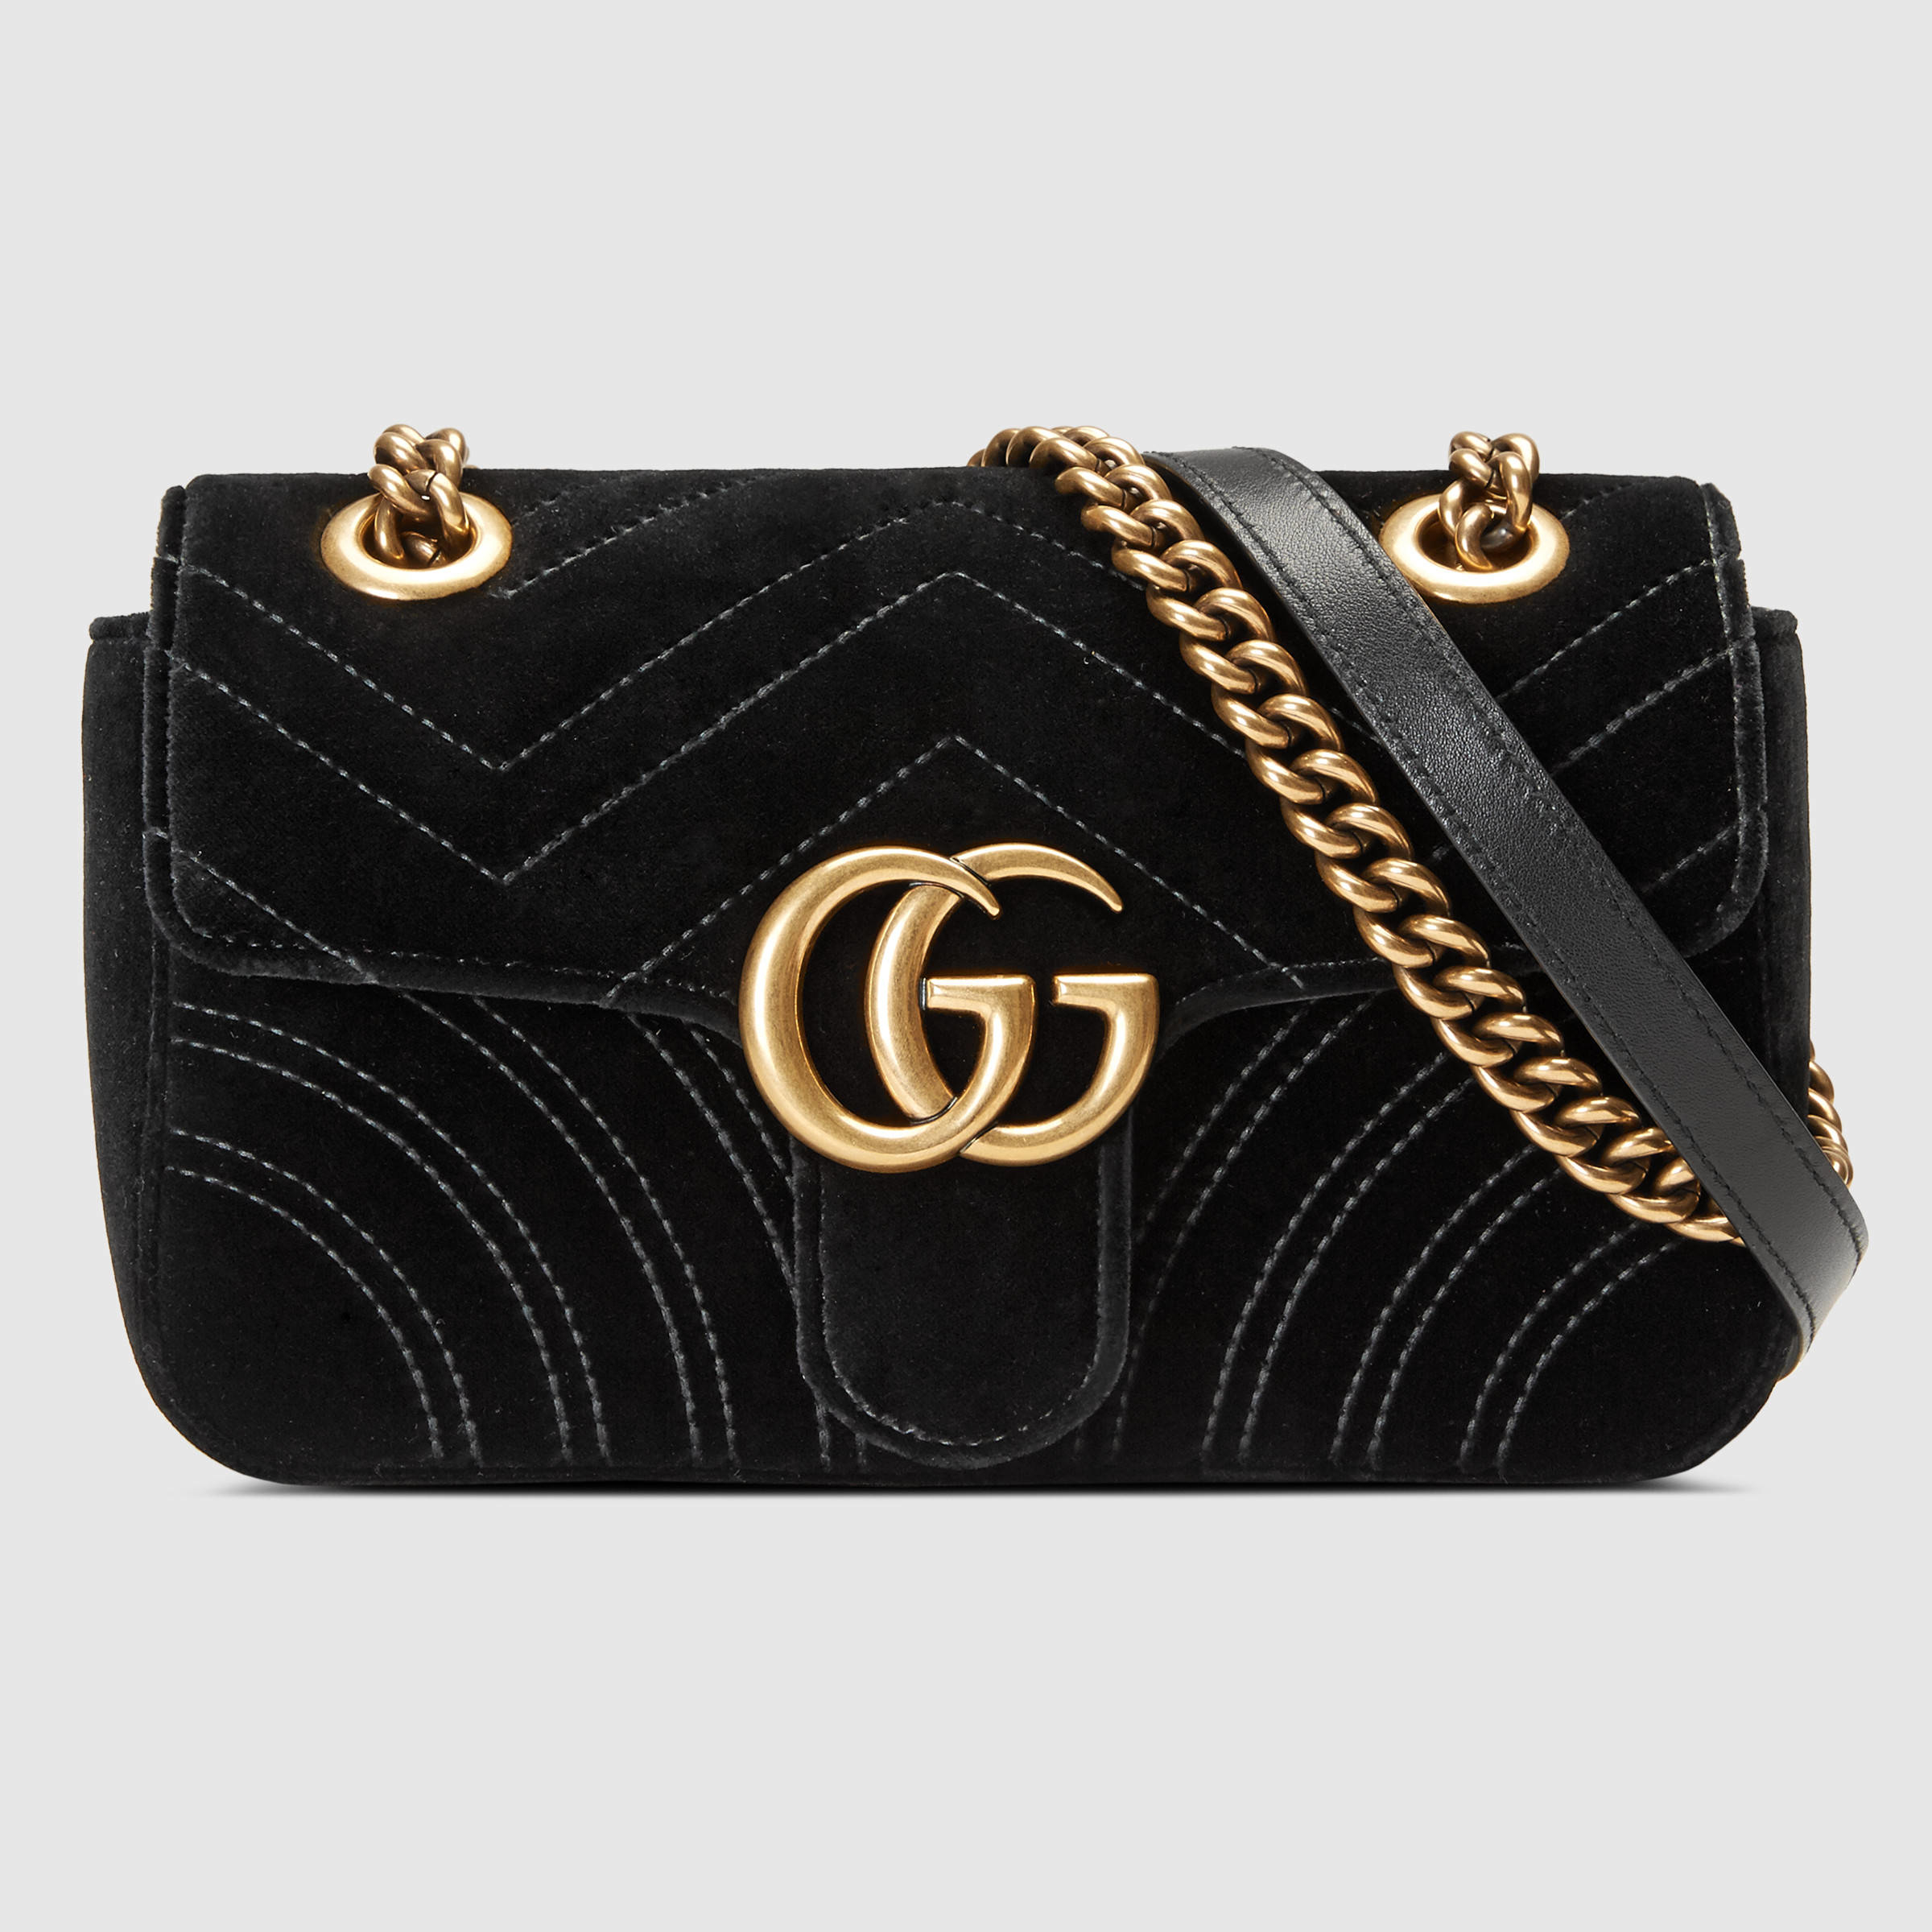 f4a638a16f9b6 Lyst - Gucci GG Marmont Velvet Mini Shoulder Bag in Black